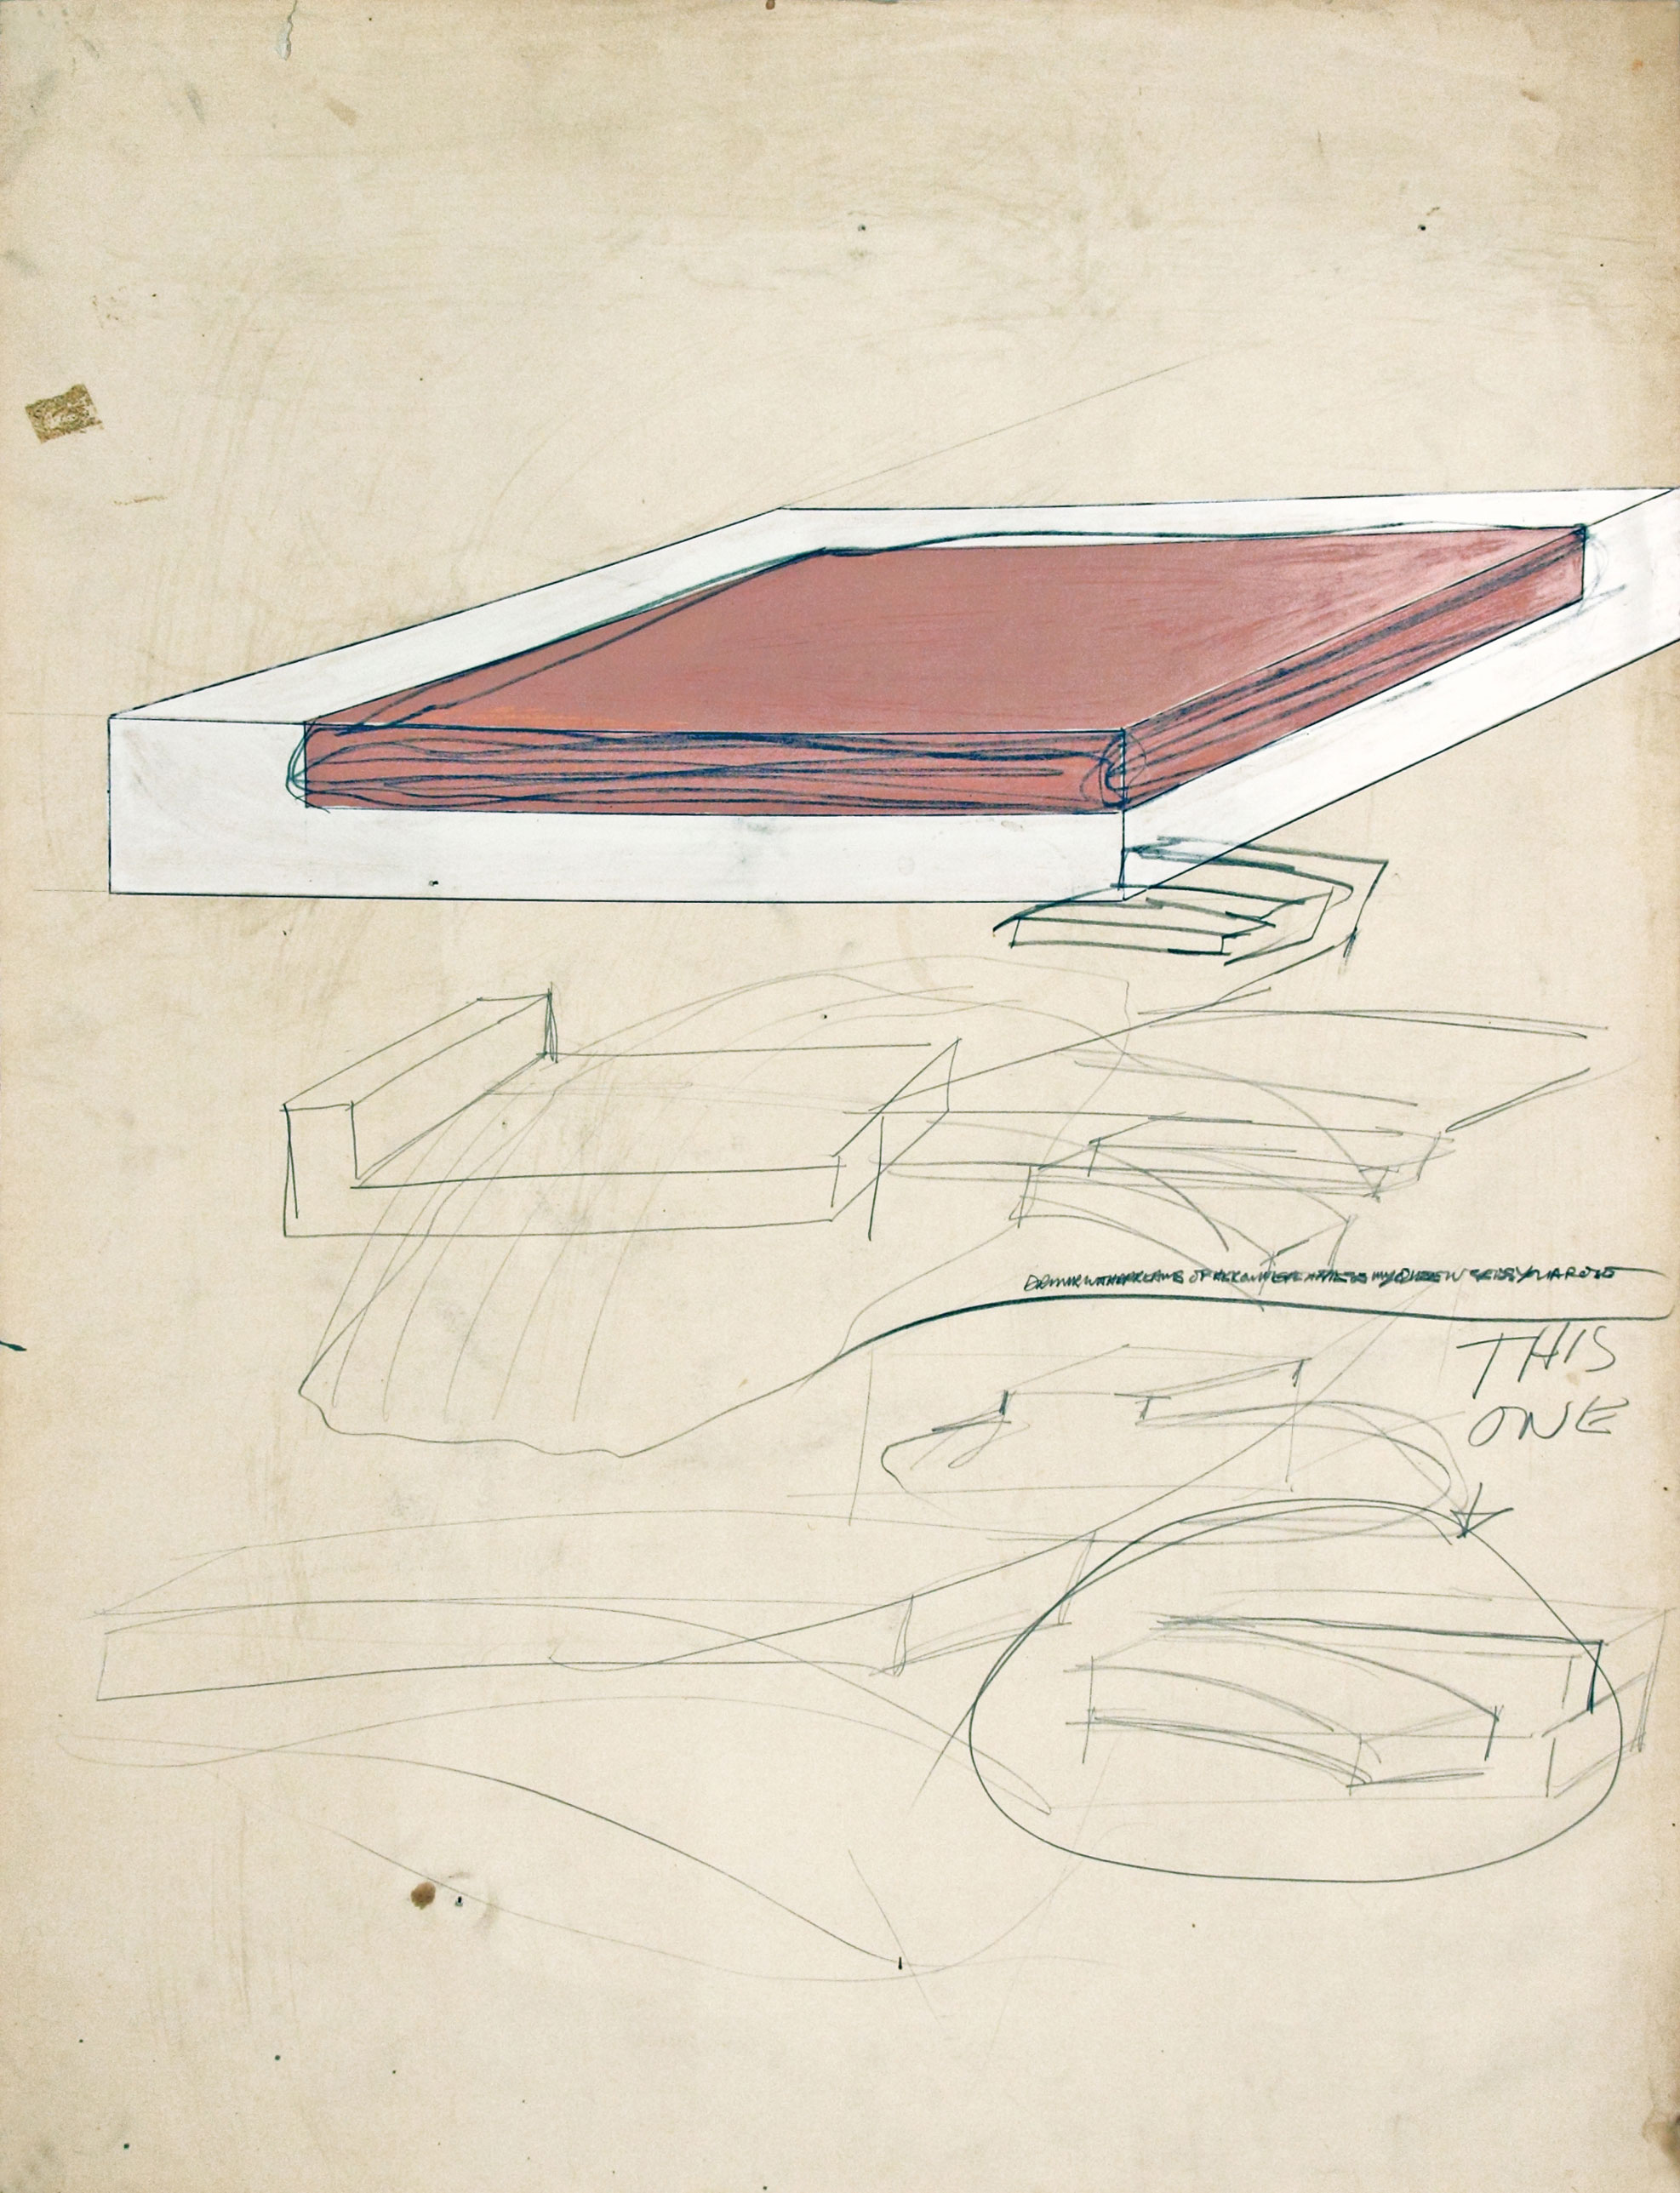 P_32_Untitled_Drawing_1965_1960s_Drawings_Related_To_Sculpture_Gary_Kuehn